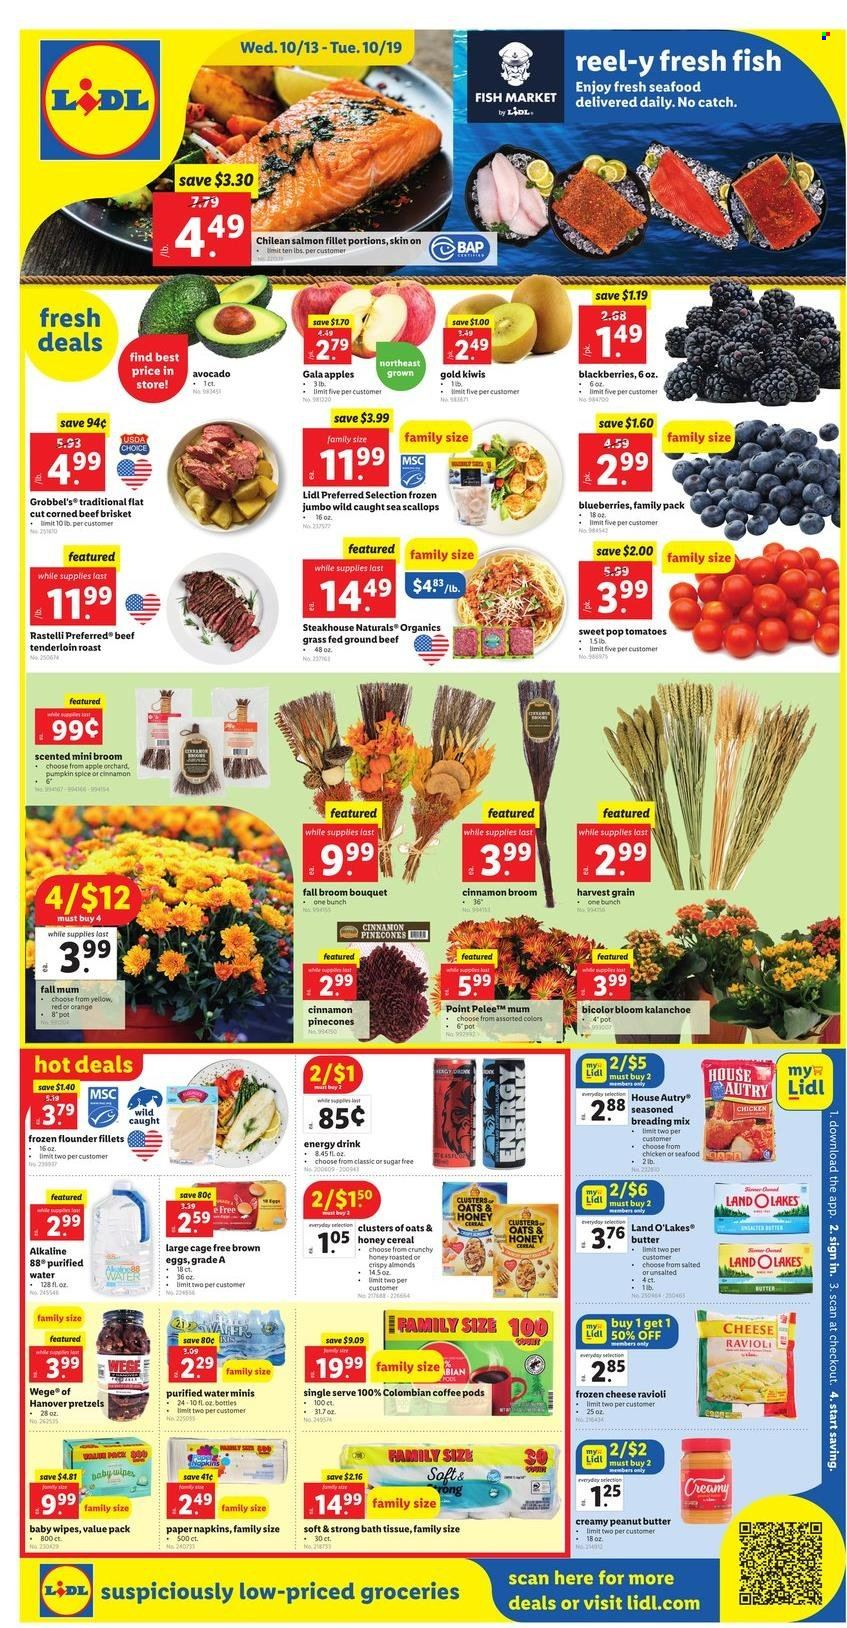 Lidl Ad from october 13 to 19 2021 - Page 1